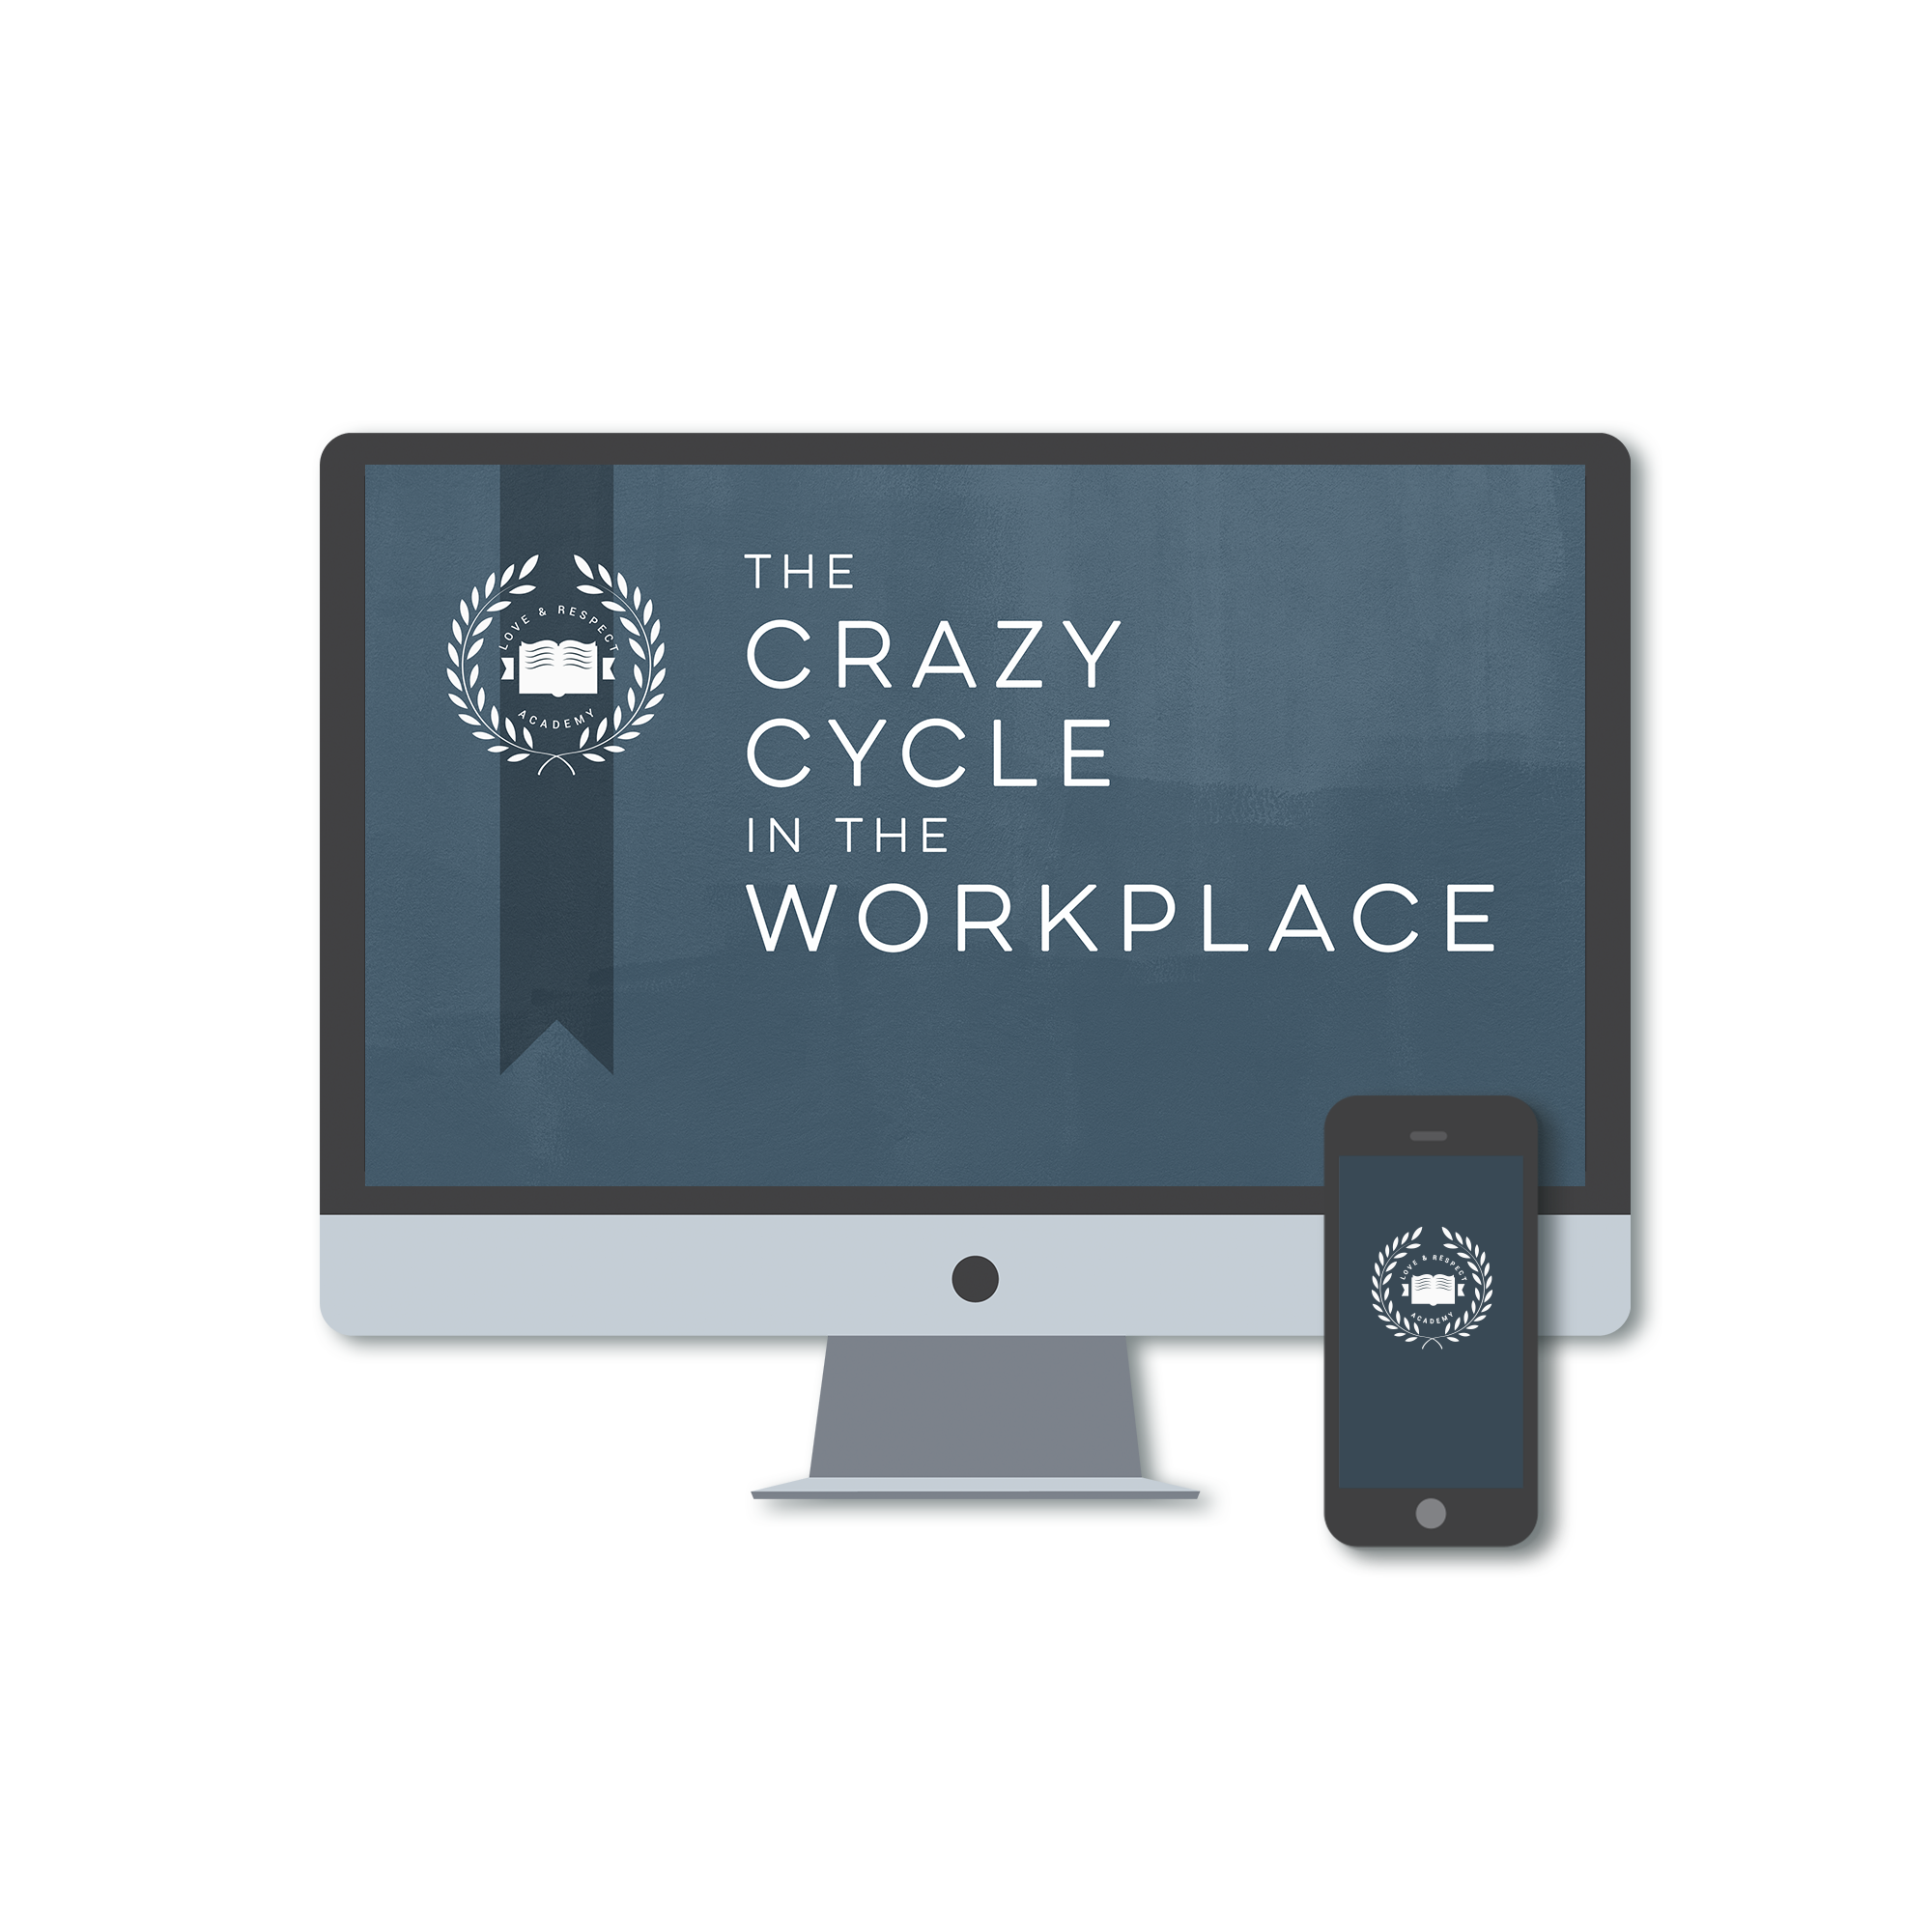 Crazy Cycle In The Workplace - In this 2-part series, Dr. Emerson Eggerichs hones in on the transformative power of a workplace marked by two crucial qualities—personal care and respect. Without a healthy dose of both, a Crazy Cycle of disillusion begins. Because work plays a central role in life, it impacts the rest of our experiences.